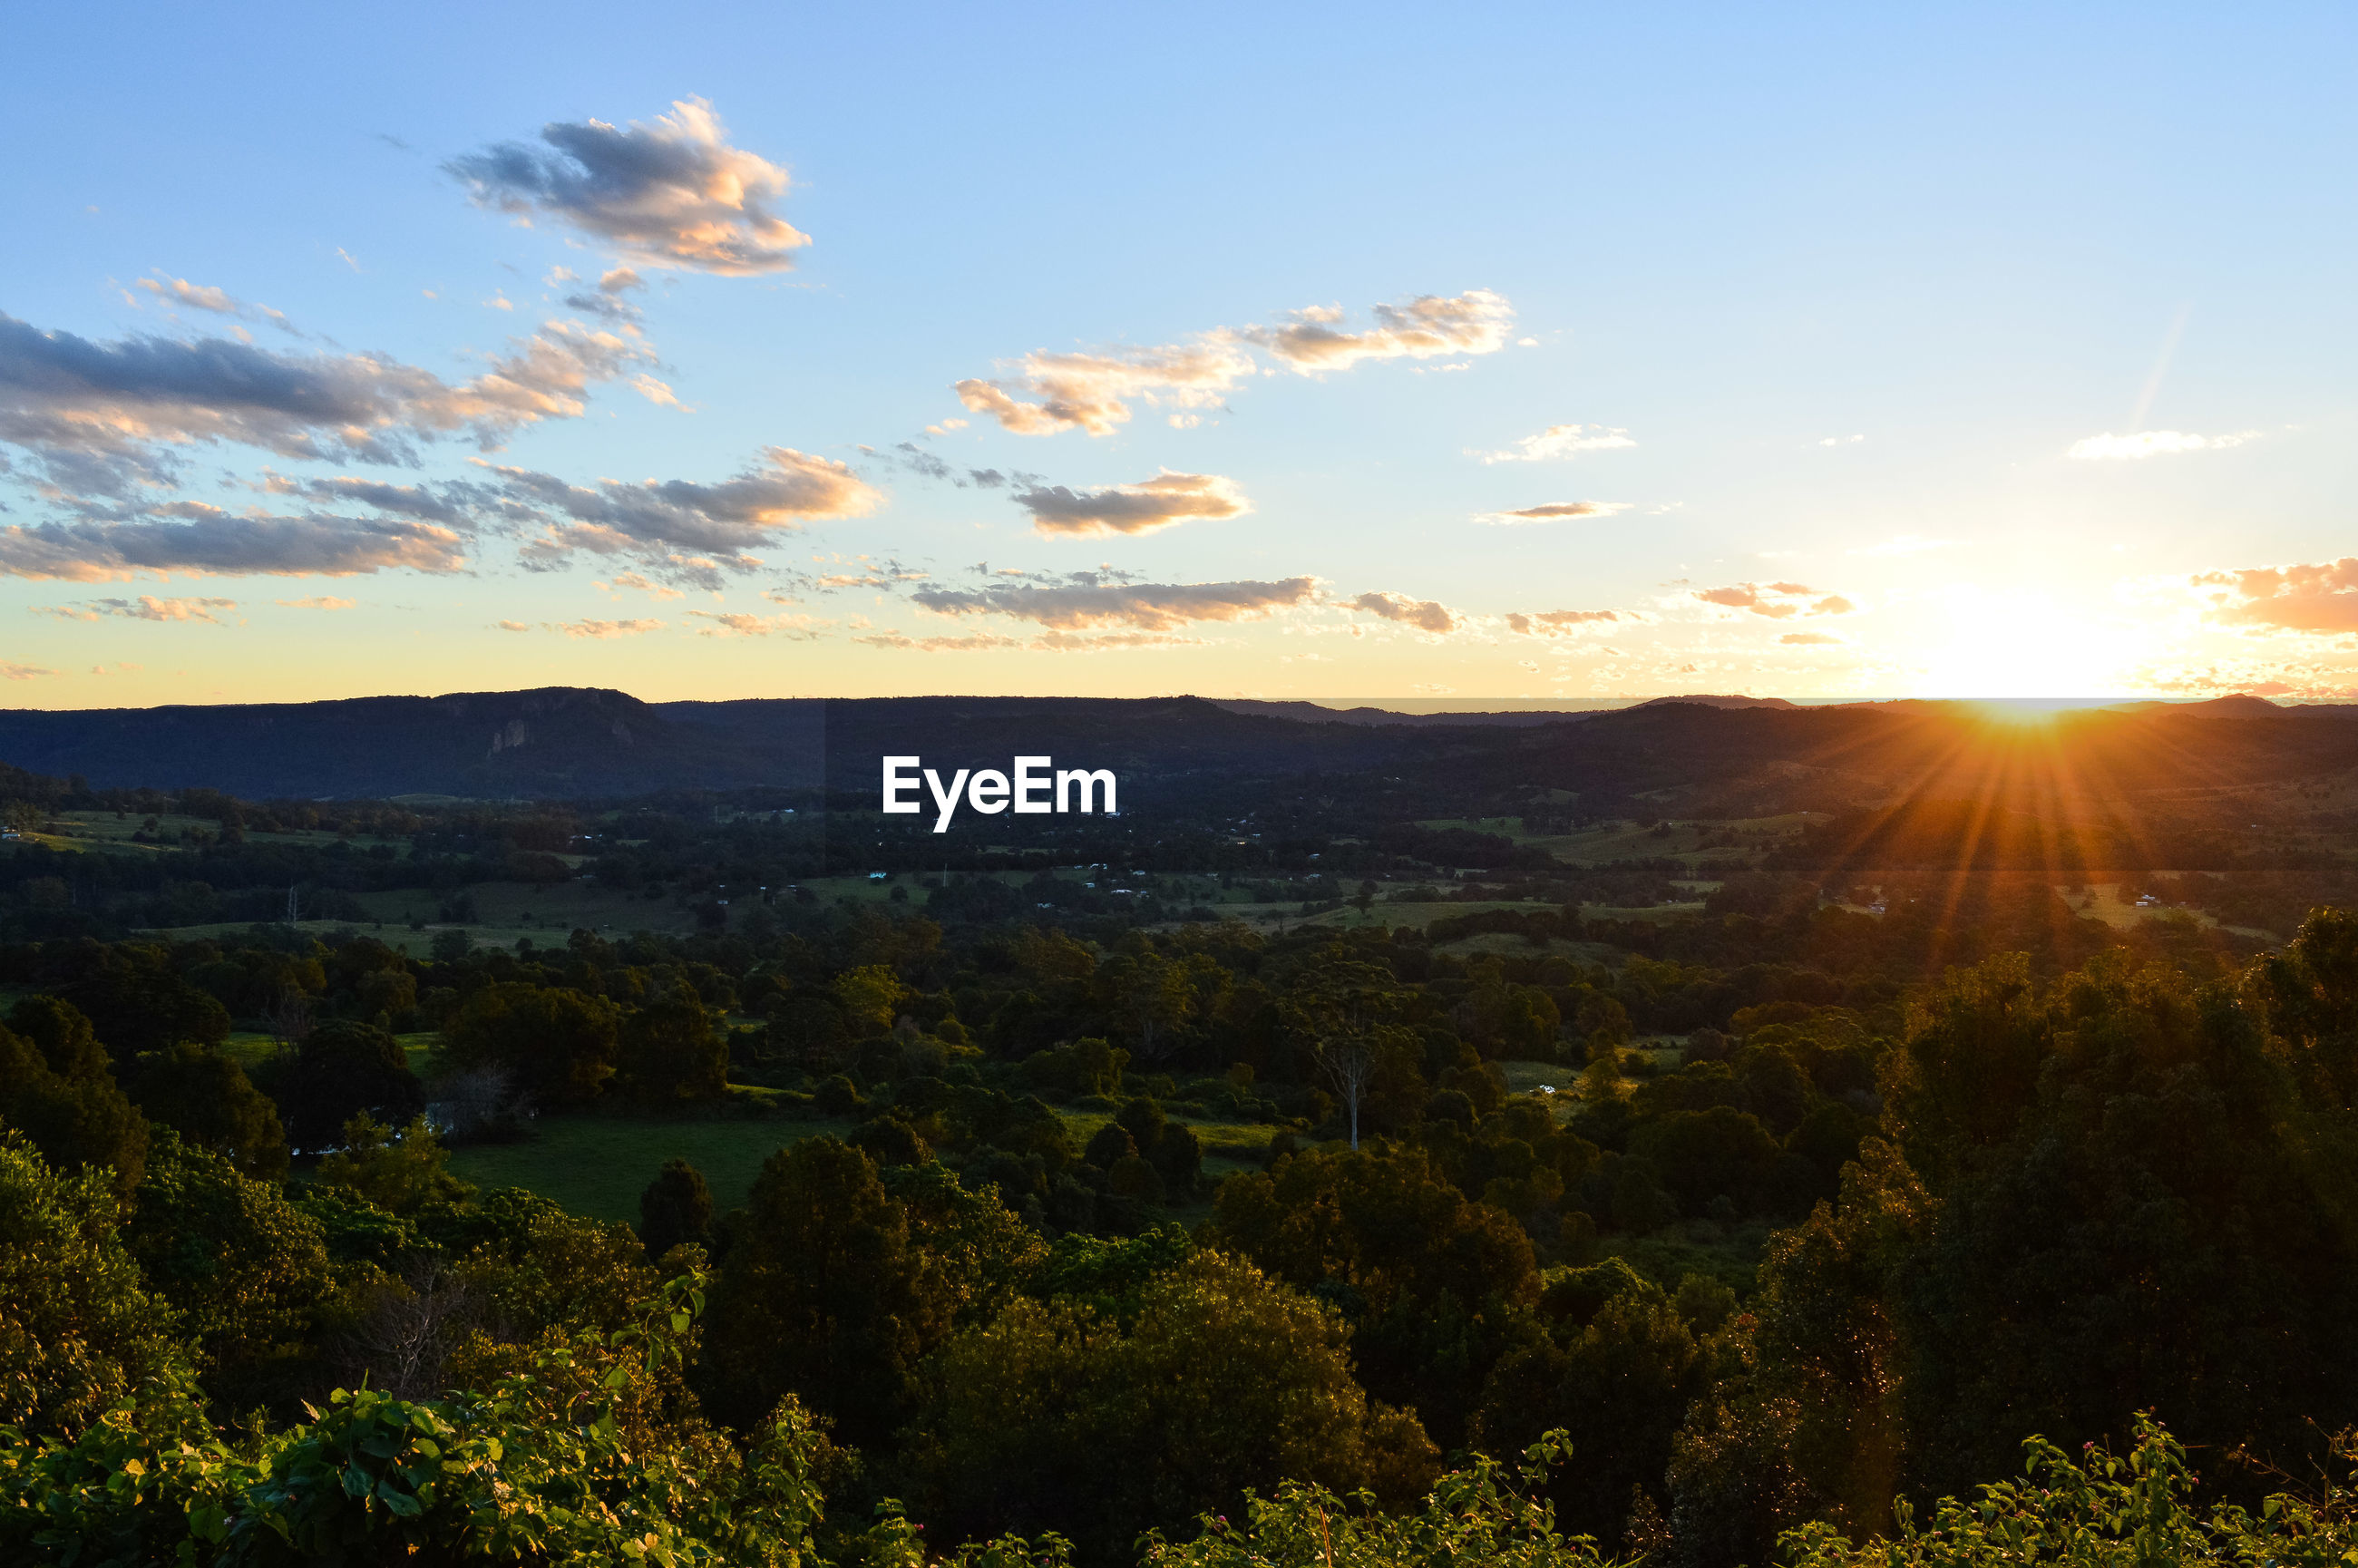 SCENIC VIEW OF SUNSET OVER LANDSCAPE